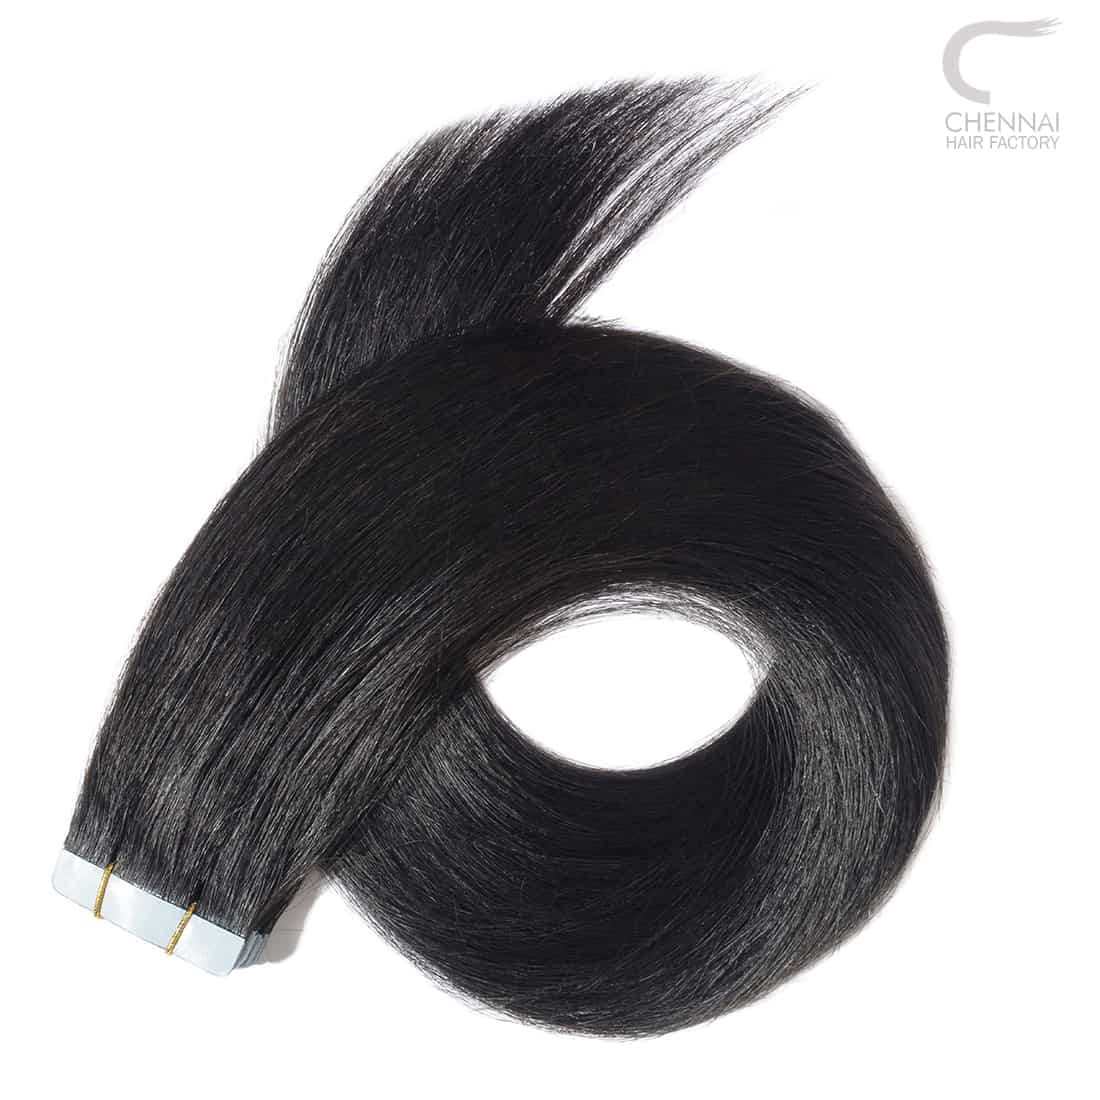 Taped / Tape in Hair Extensions